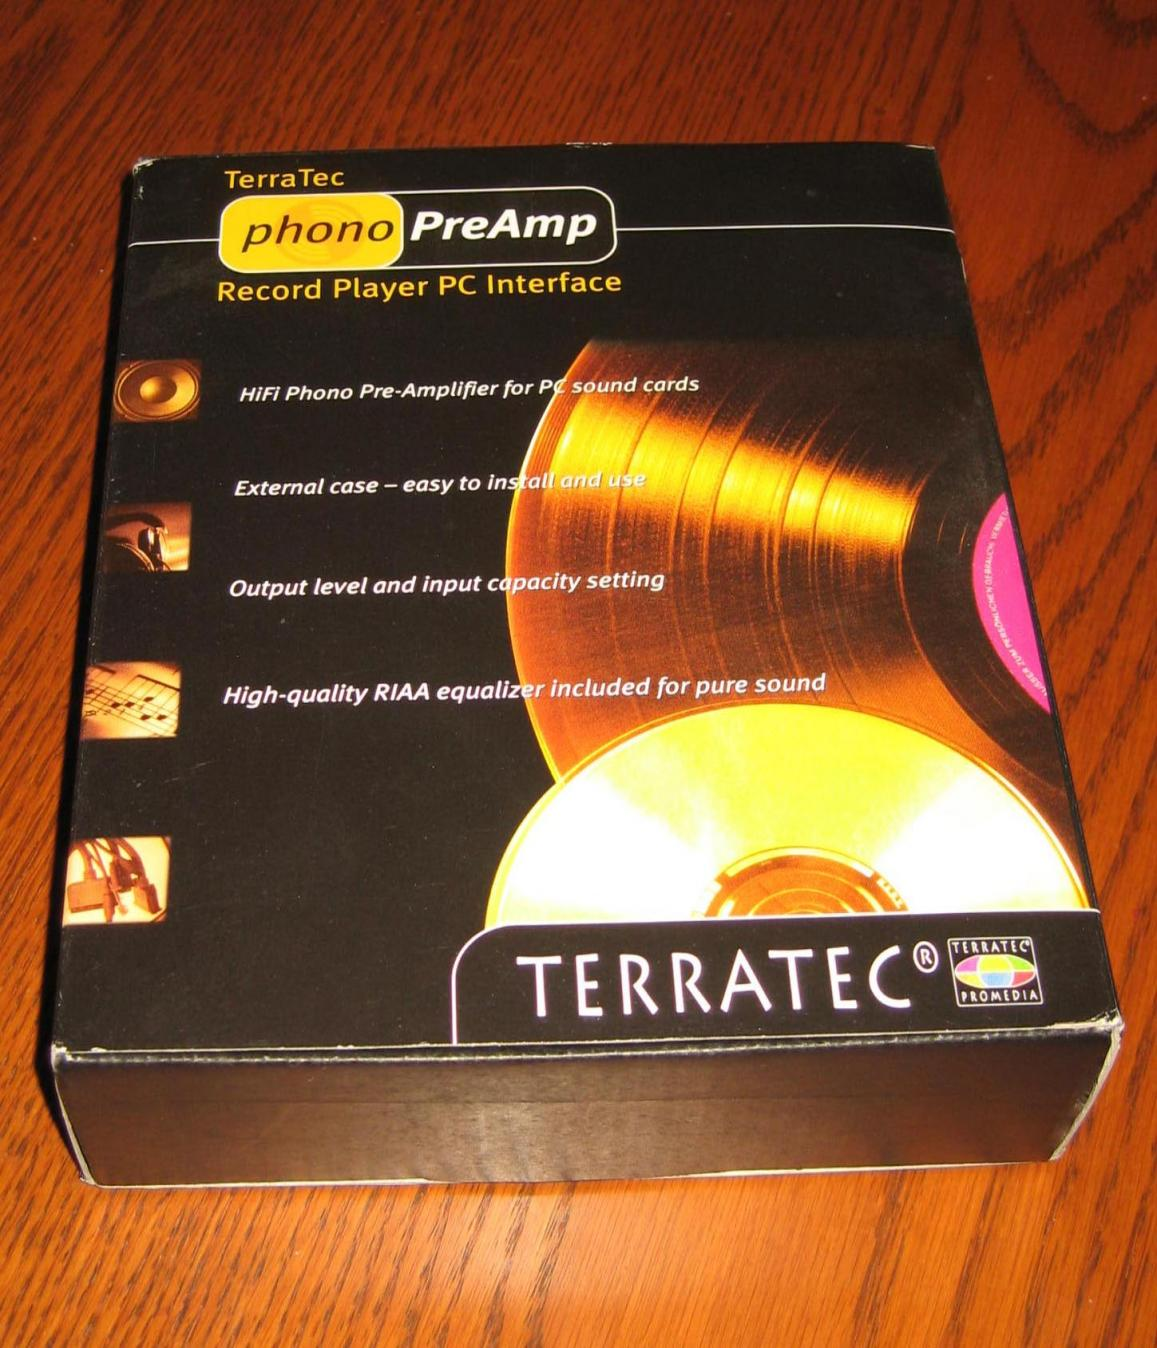 For Sale Terratec Phono Preamp Turntable To Soundcard Interface Preamplifier